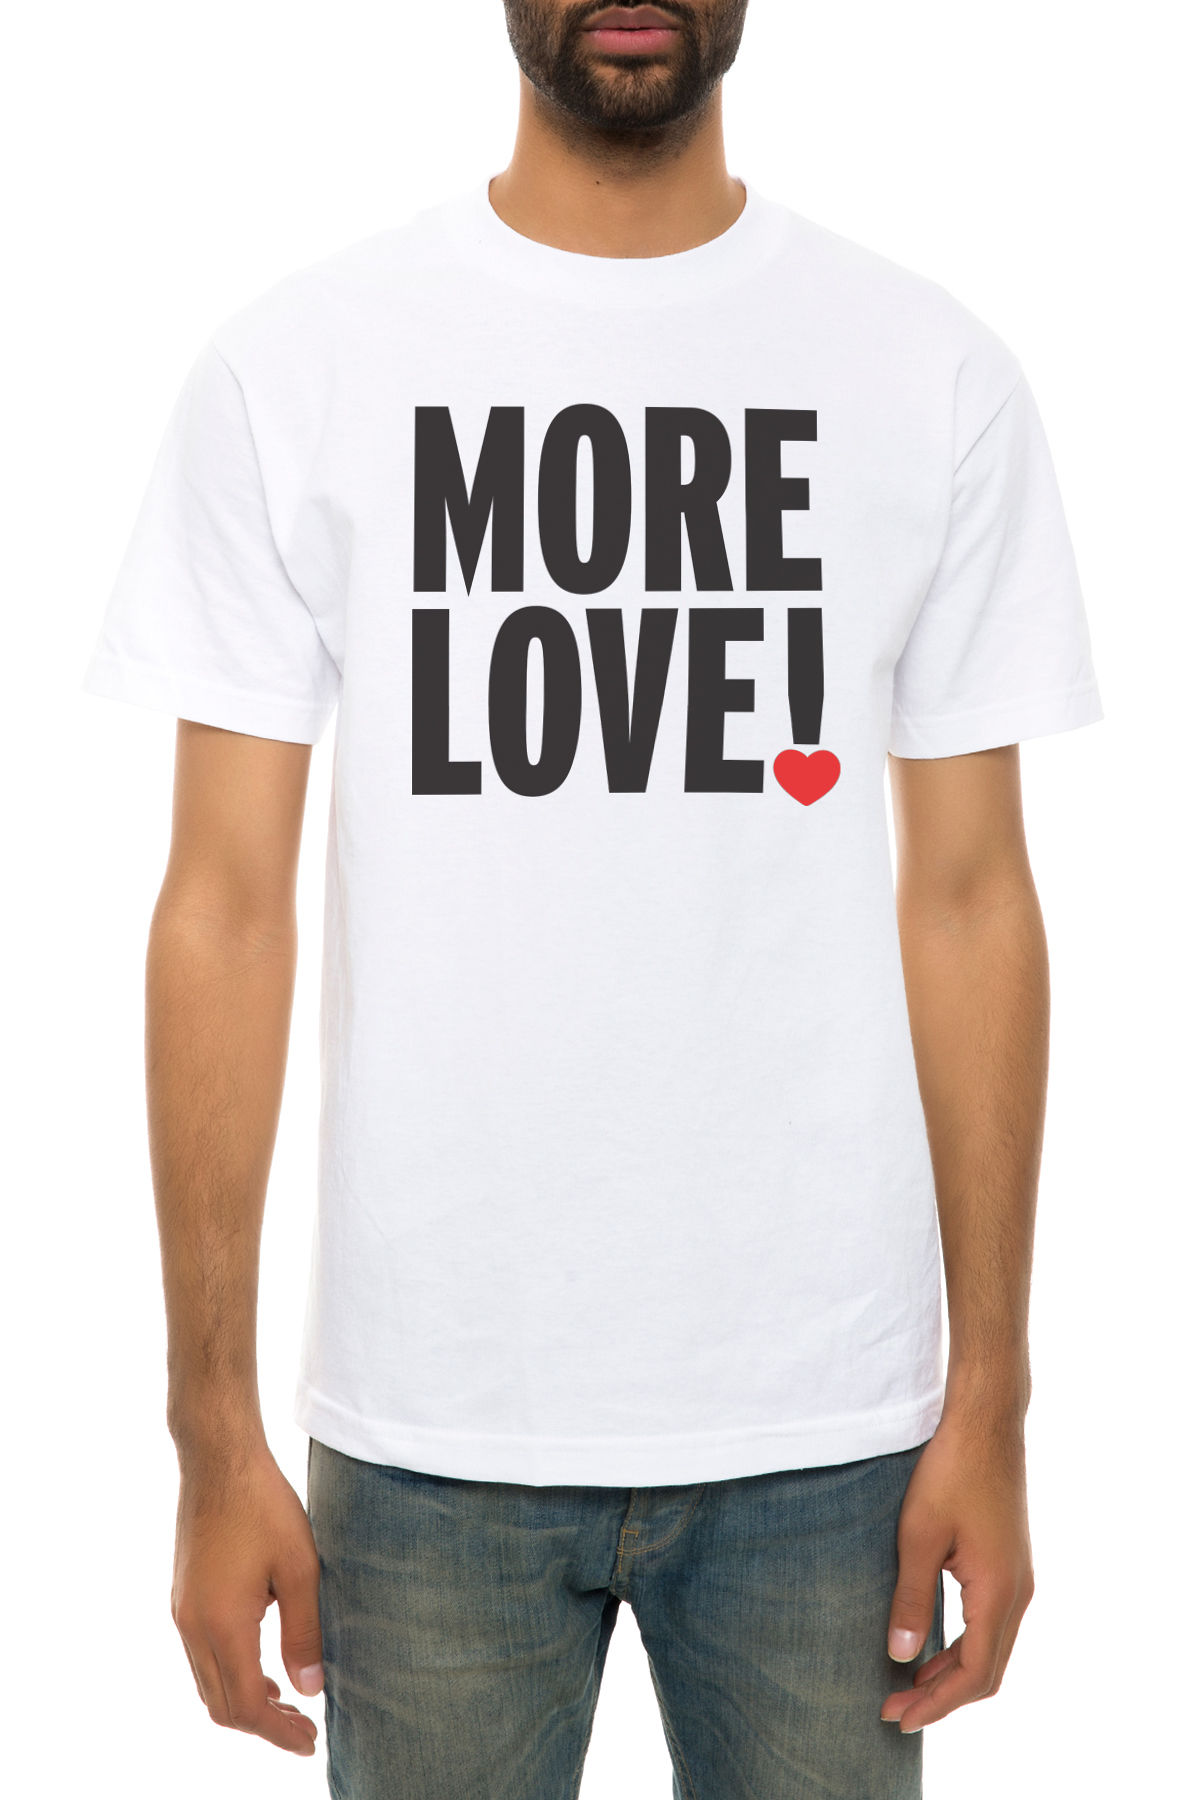 Image of The More Love Tee in White